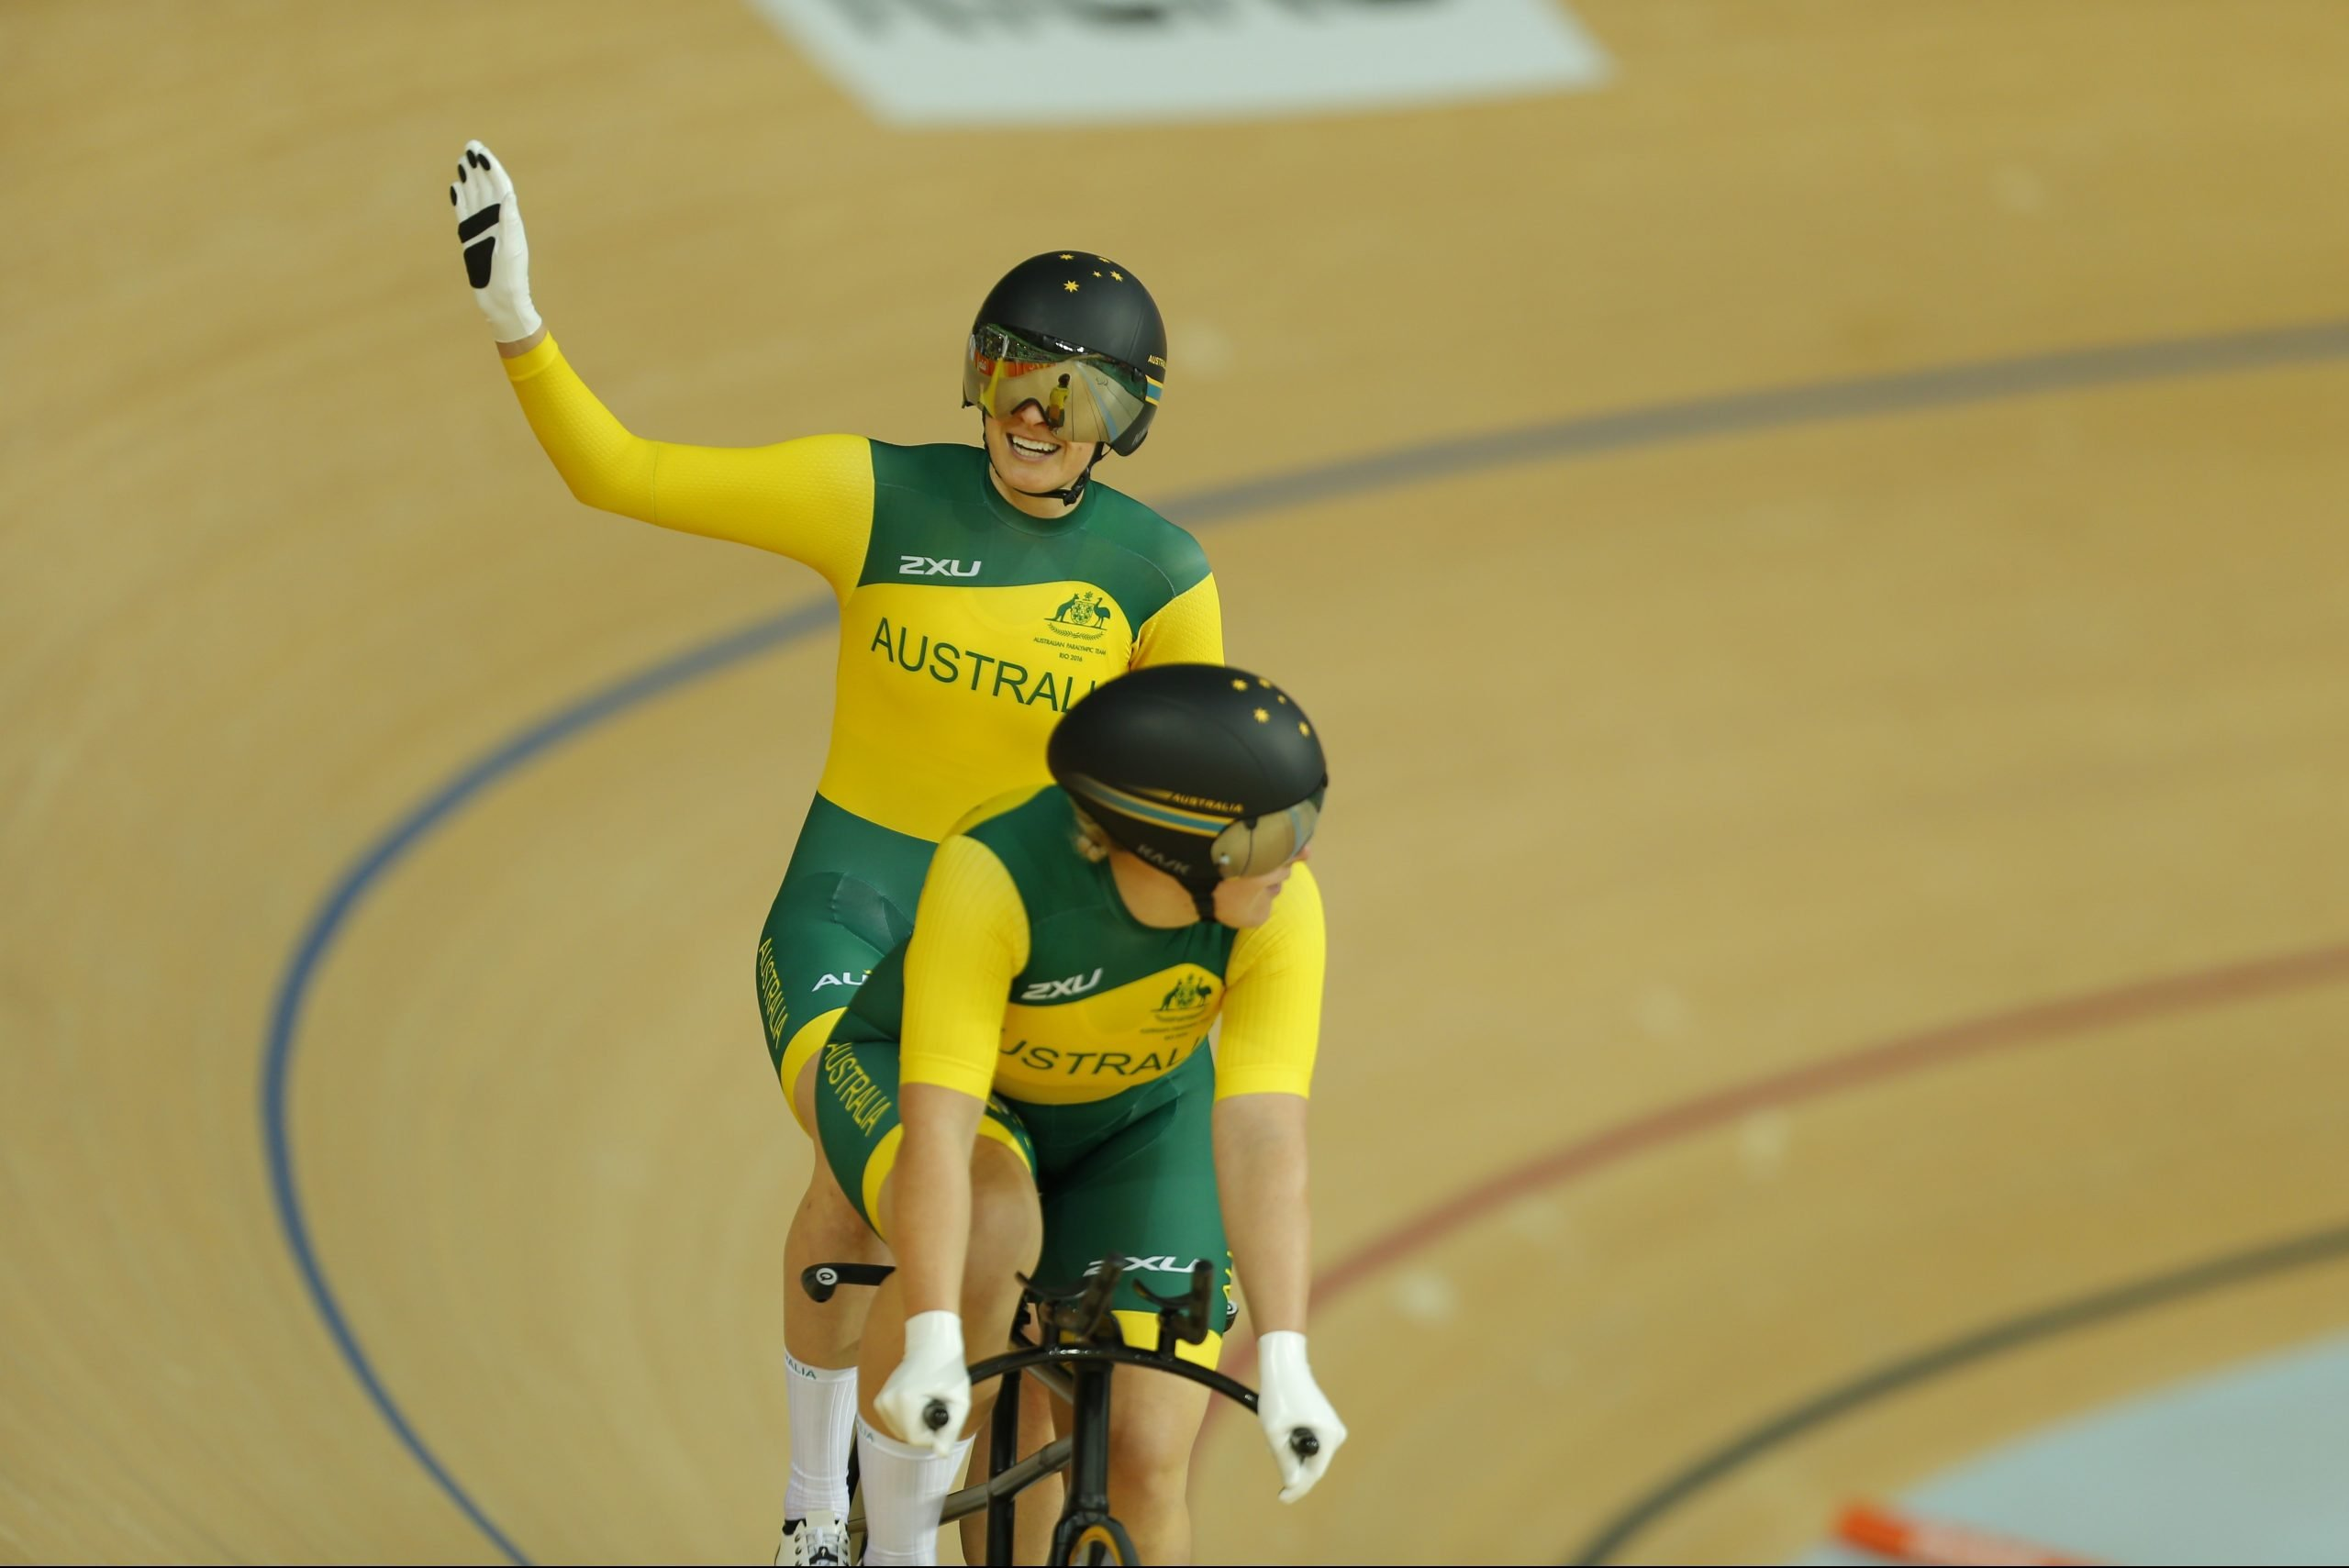 VIS seeking expressions of interest track cycling tandem pilot (female) and vision impaired athlete (male)